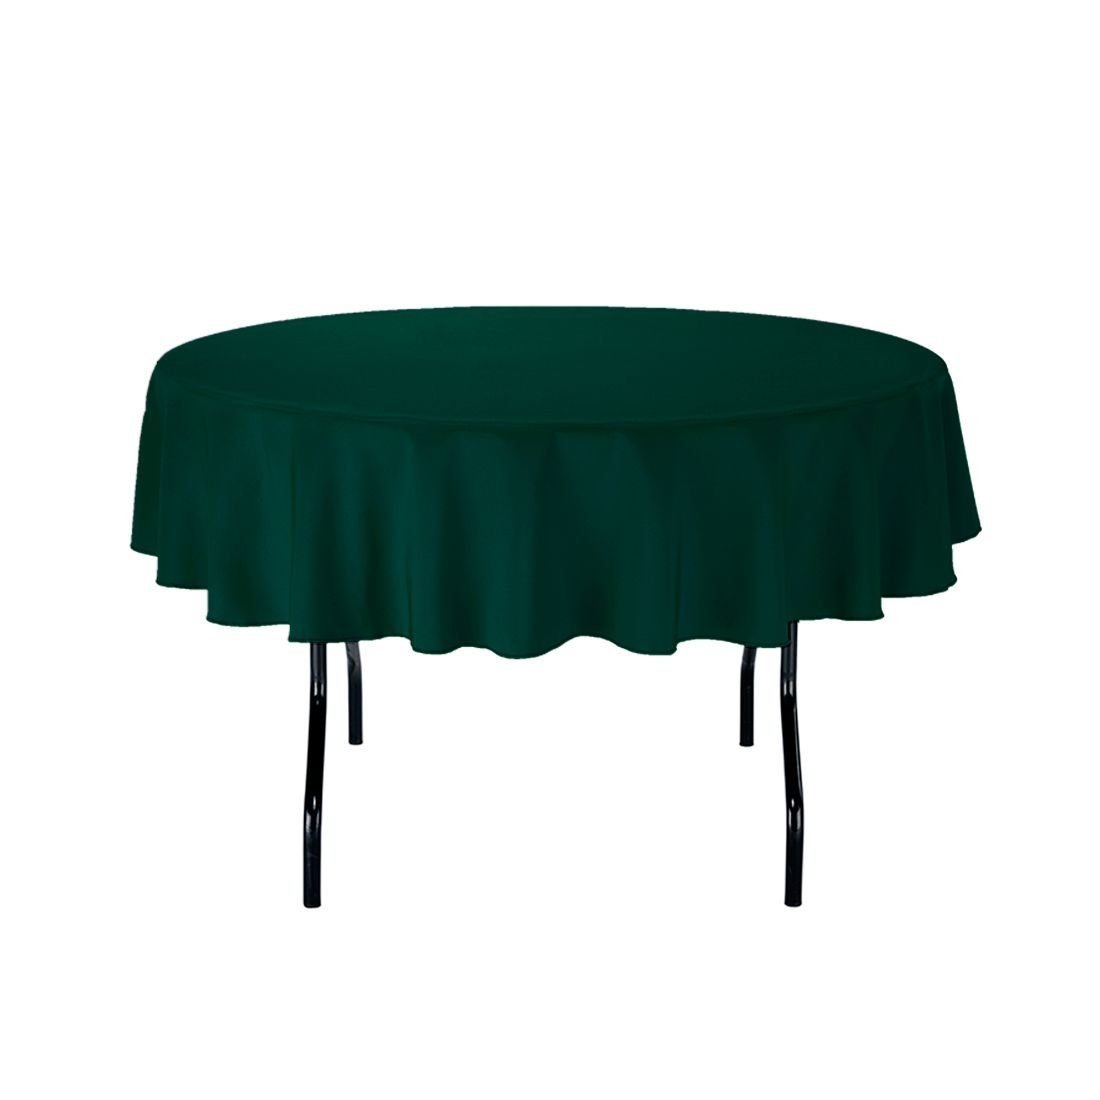 "Gee Di Moda Tablecloth - 70"" Inch Round Tablecloths for Circular Table Cover in Hunter Green Washable Polyester - Great for Buffet Table, Parties, Holiday Dinner & More"